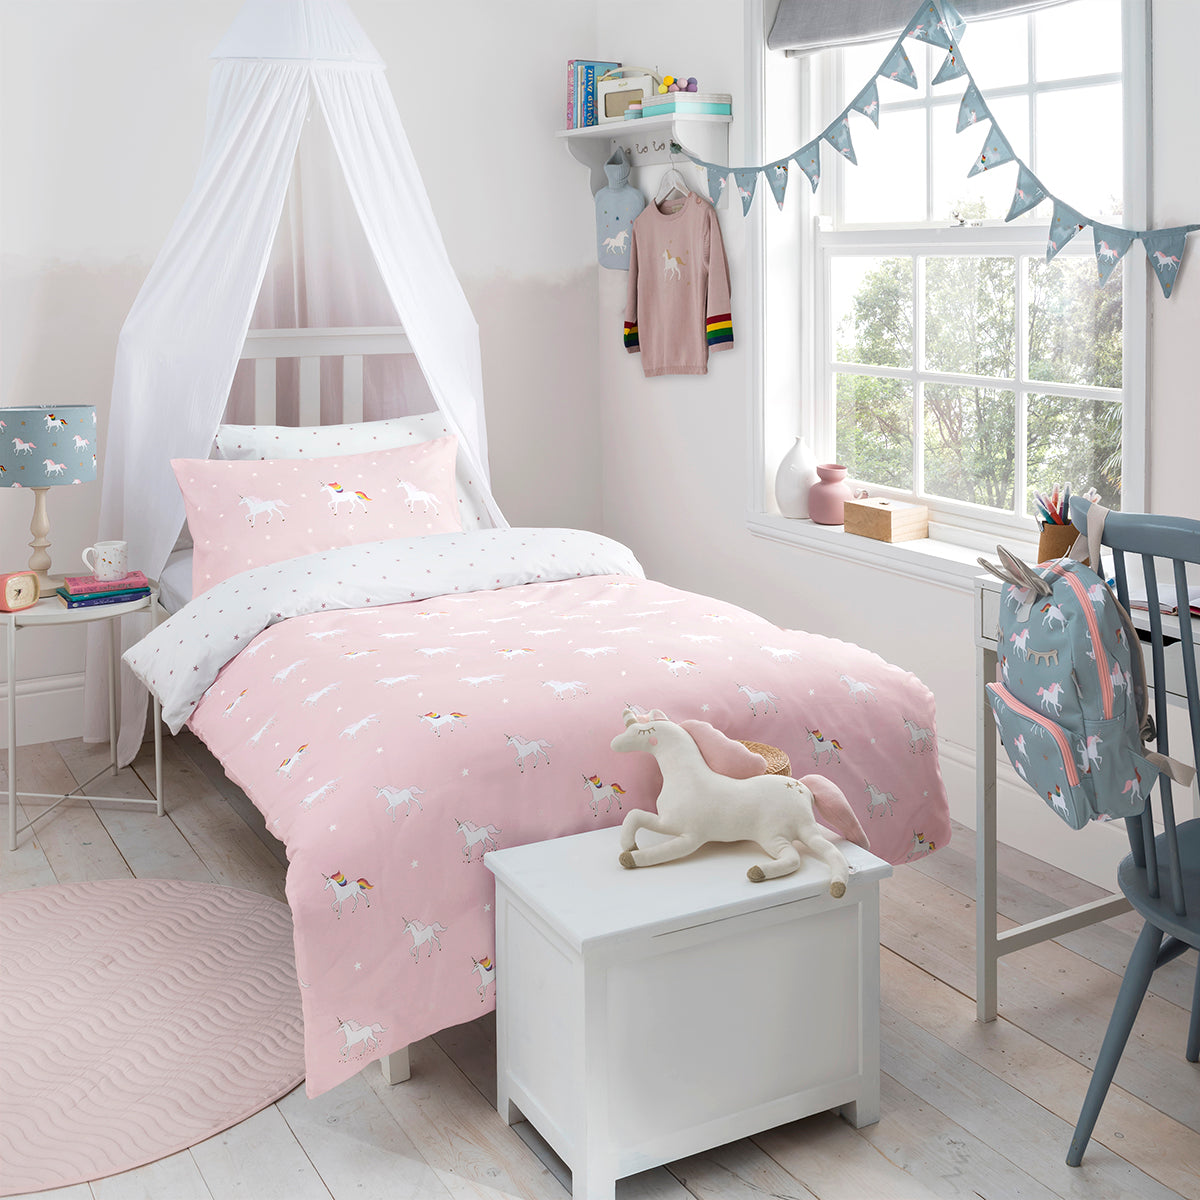 Unicorn Bedding Set by Sophie Allport